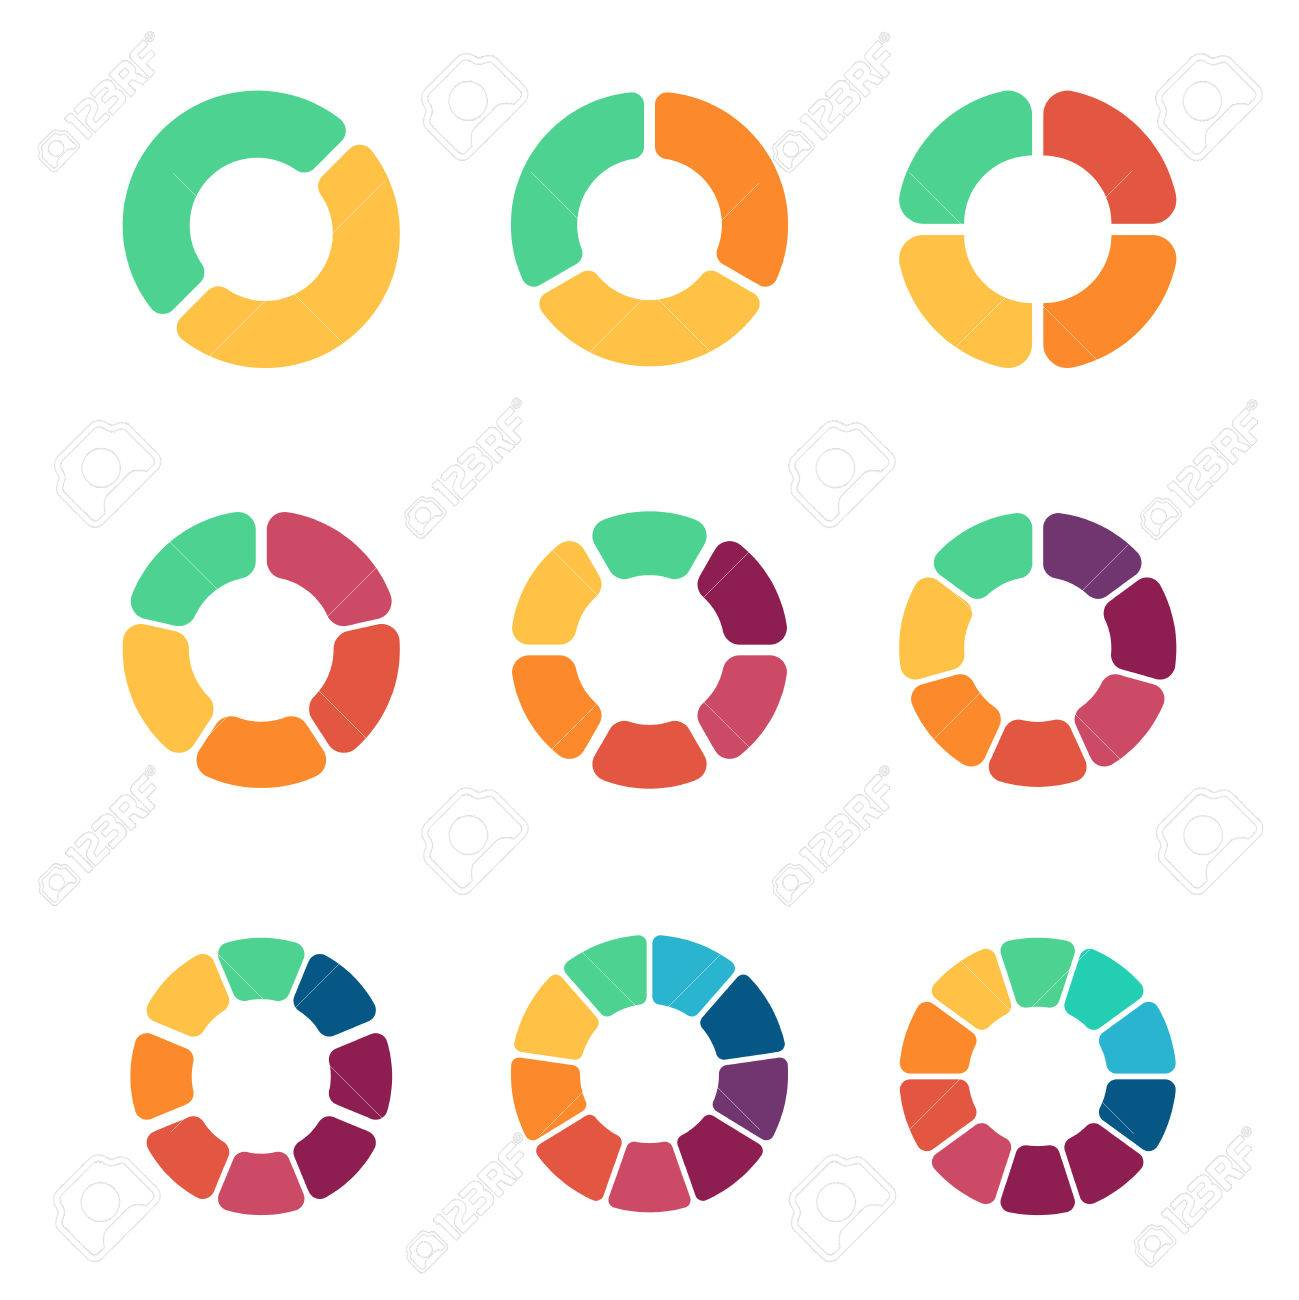 Pie chart in vb images free any chart examples pie chart in vb choice image free any chart examples pie chart in vb images free nvjuhfo Gallery